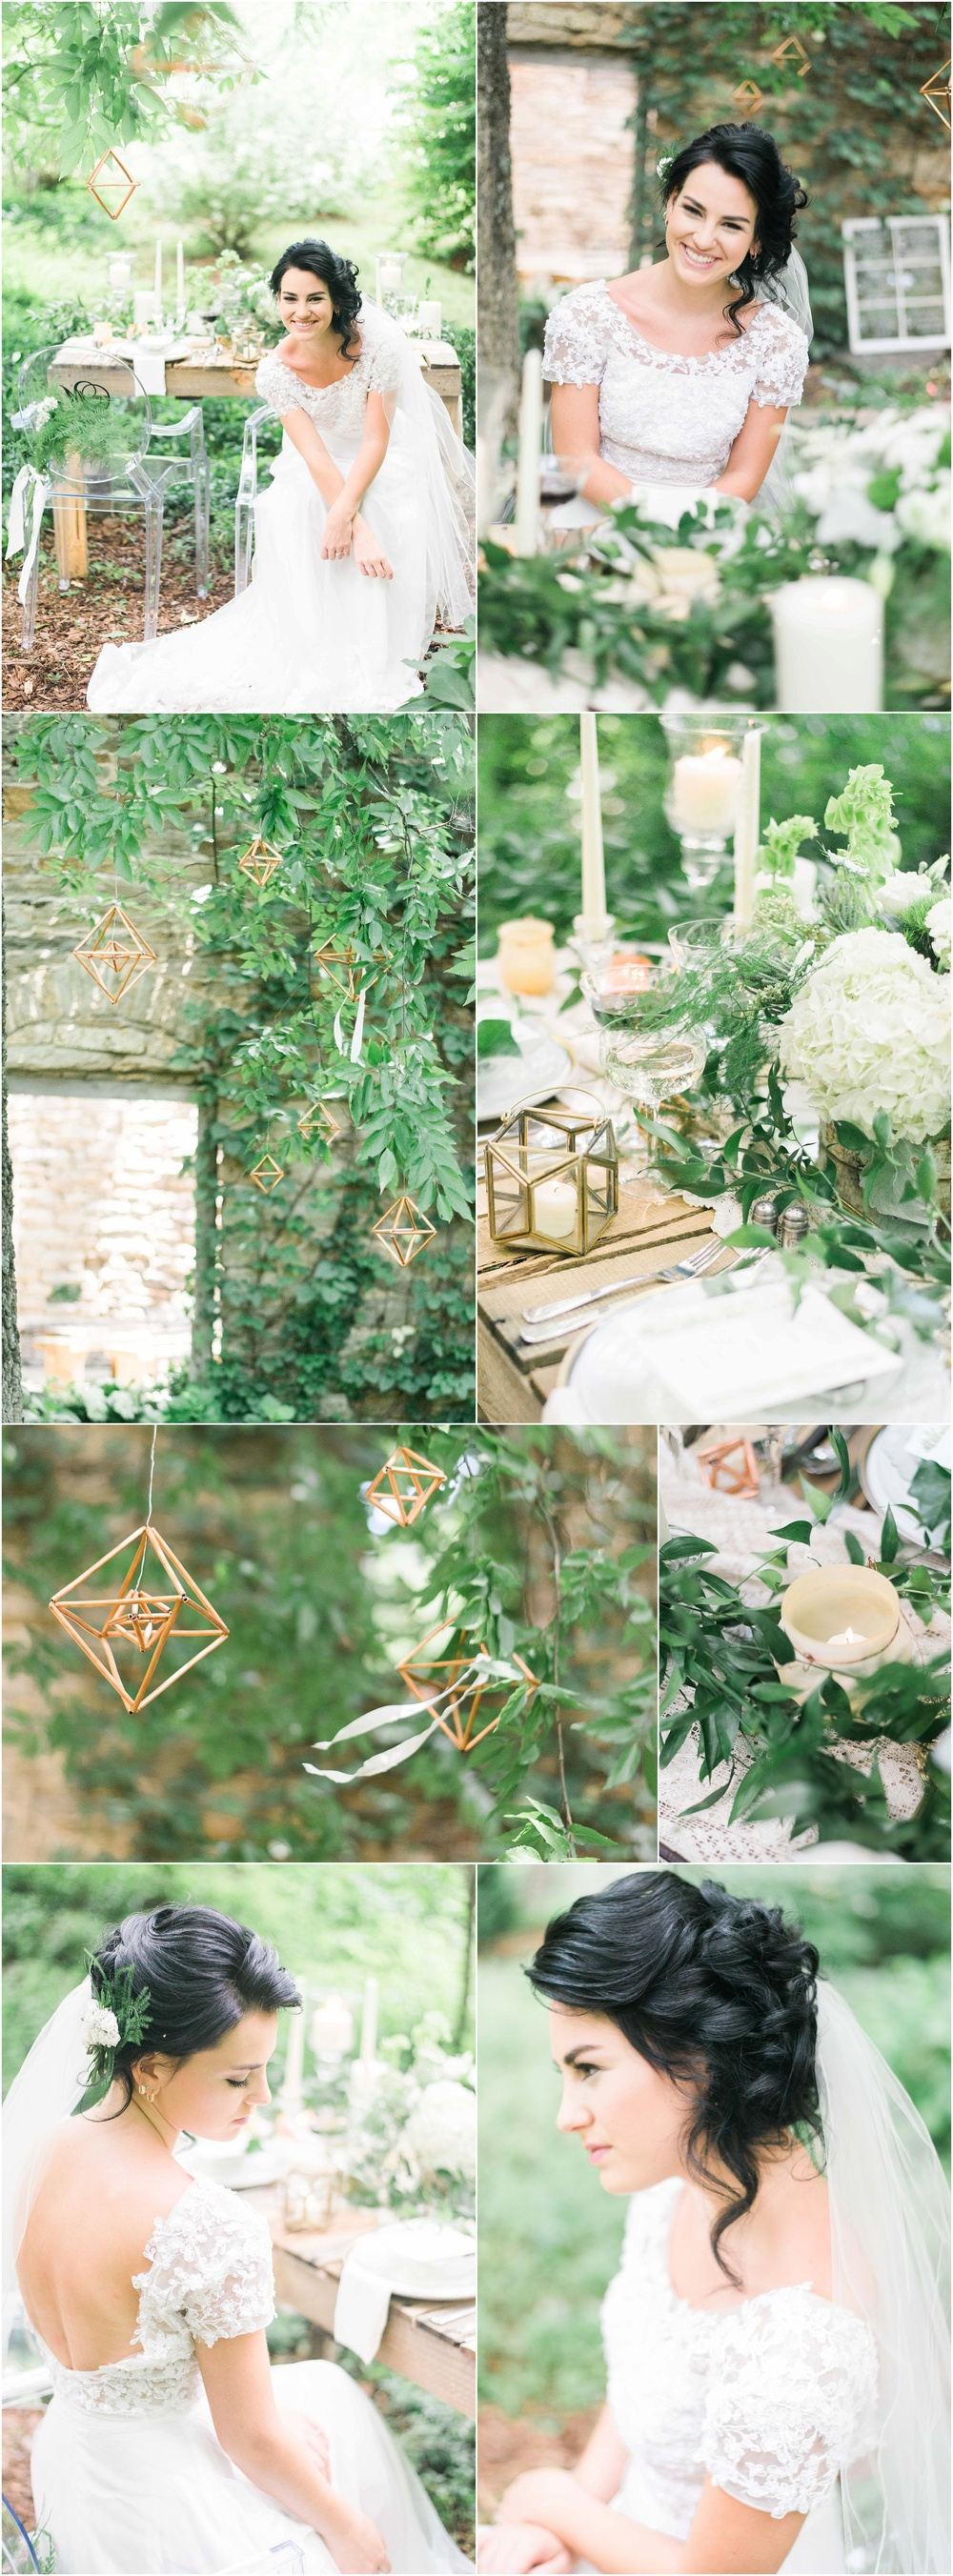 charlottesville_wedding Photographer_styled shoot_Style Me Pretty Feature6